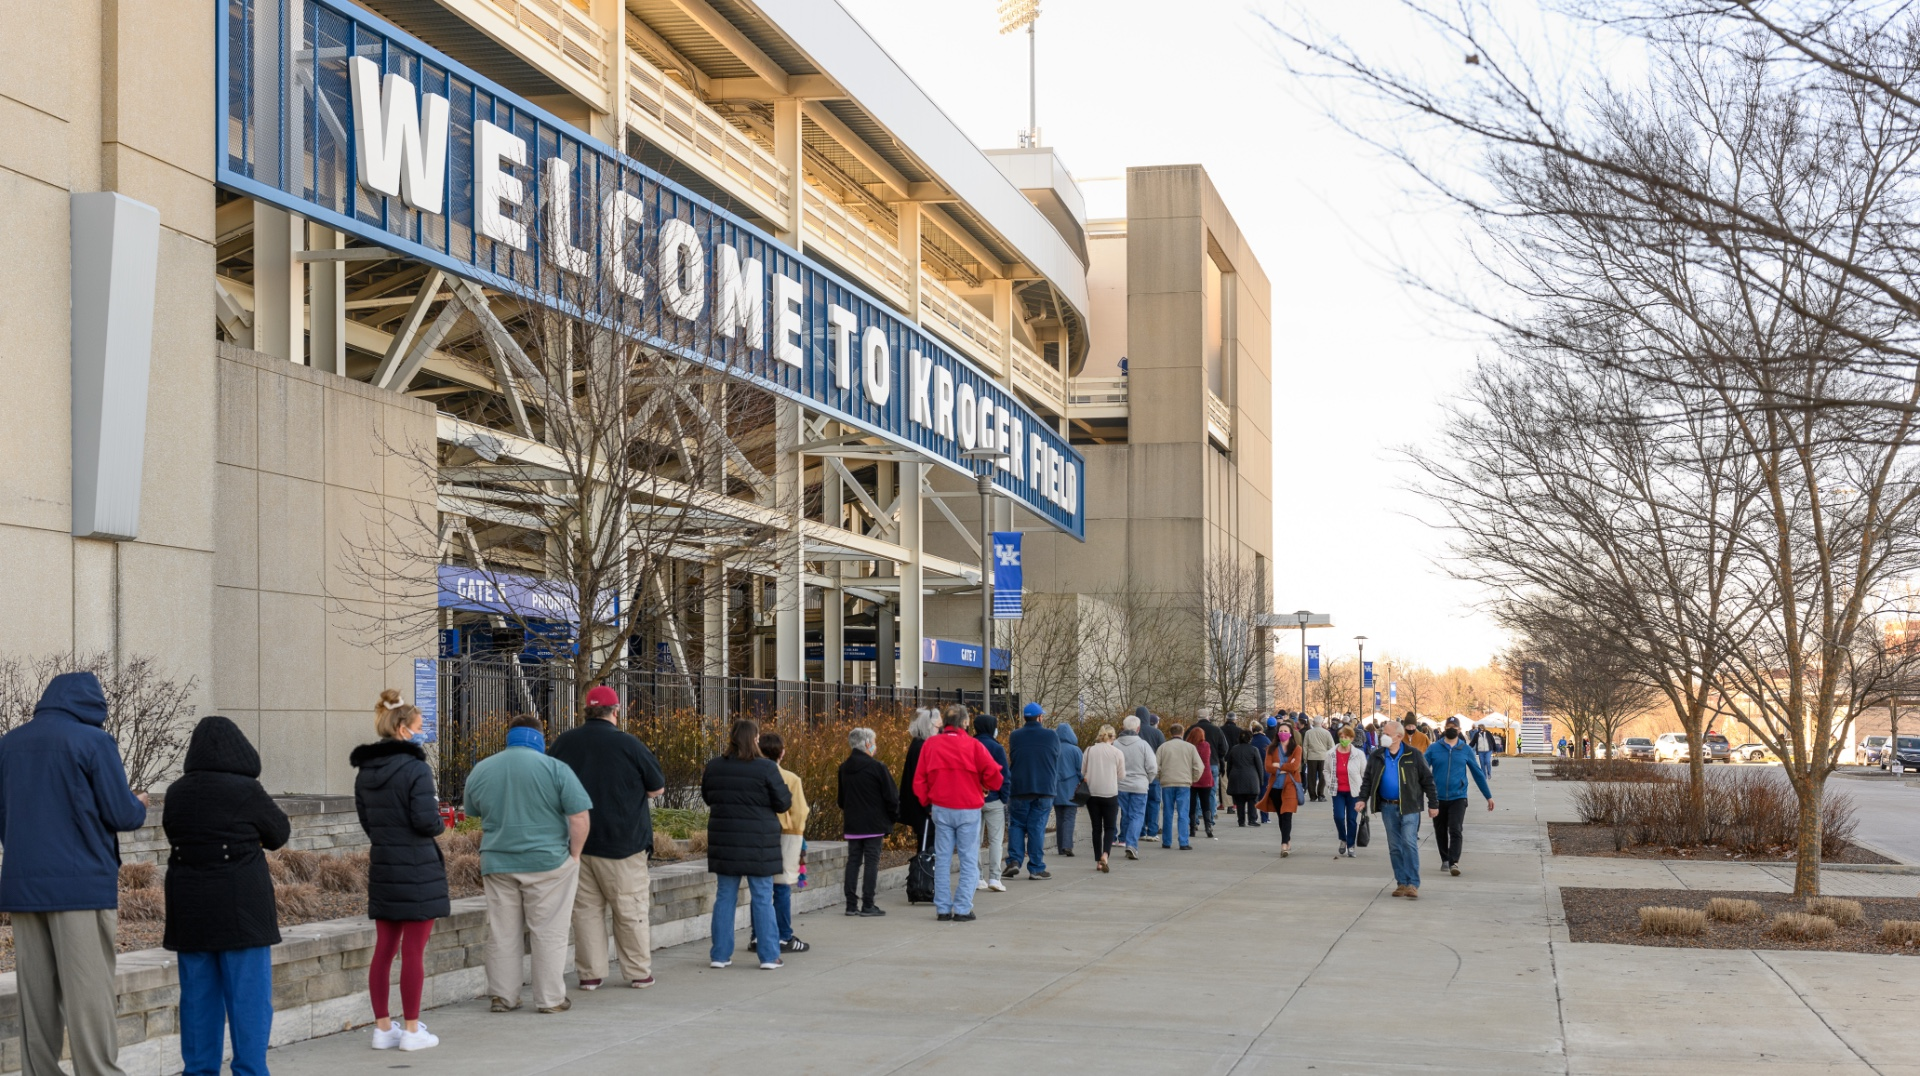 A long line of people outside of the Kroger Field Stadium waiting to get the COVID-19 vaccine.